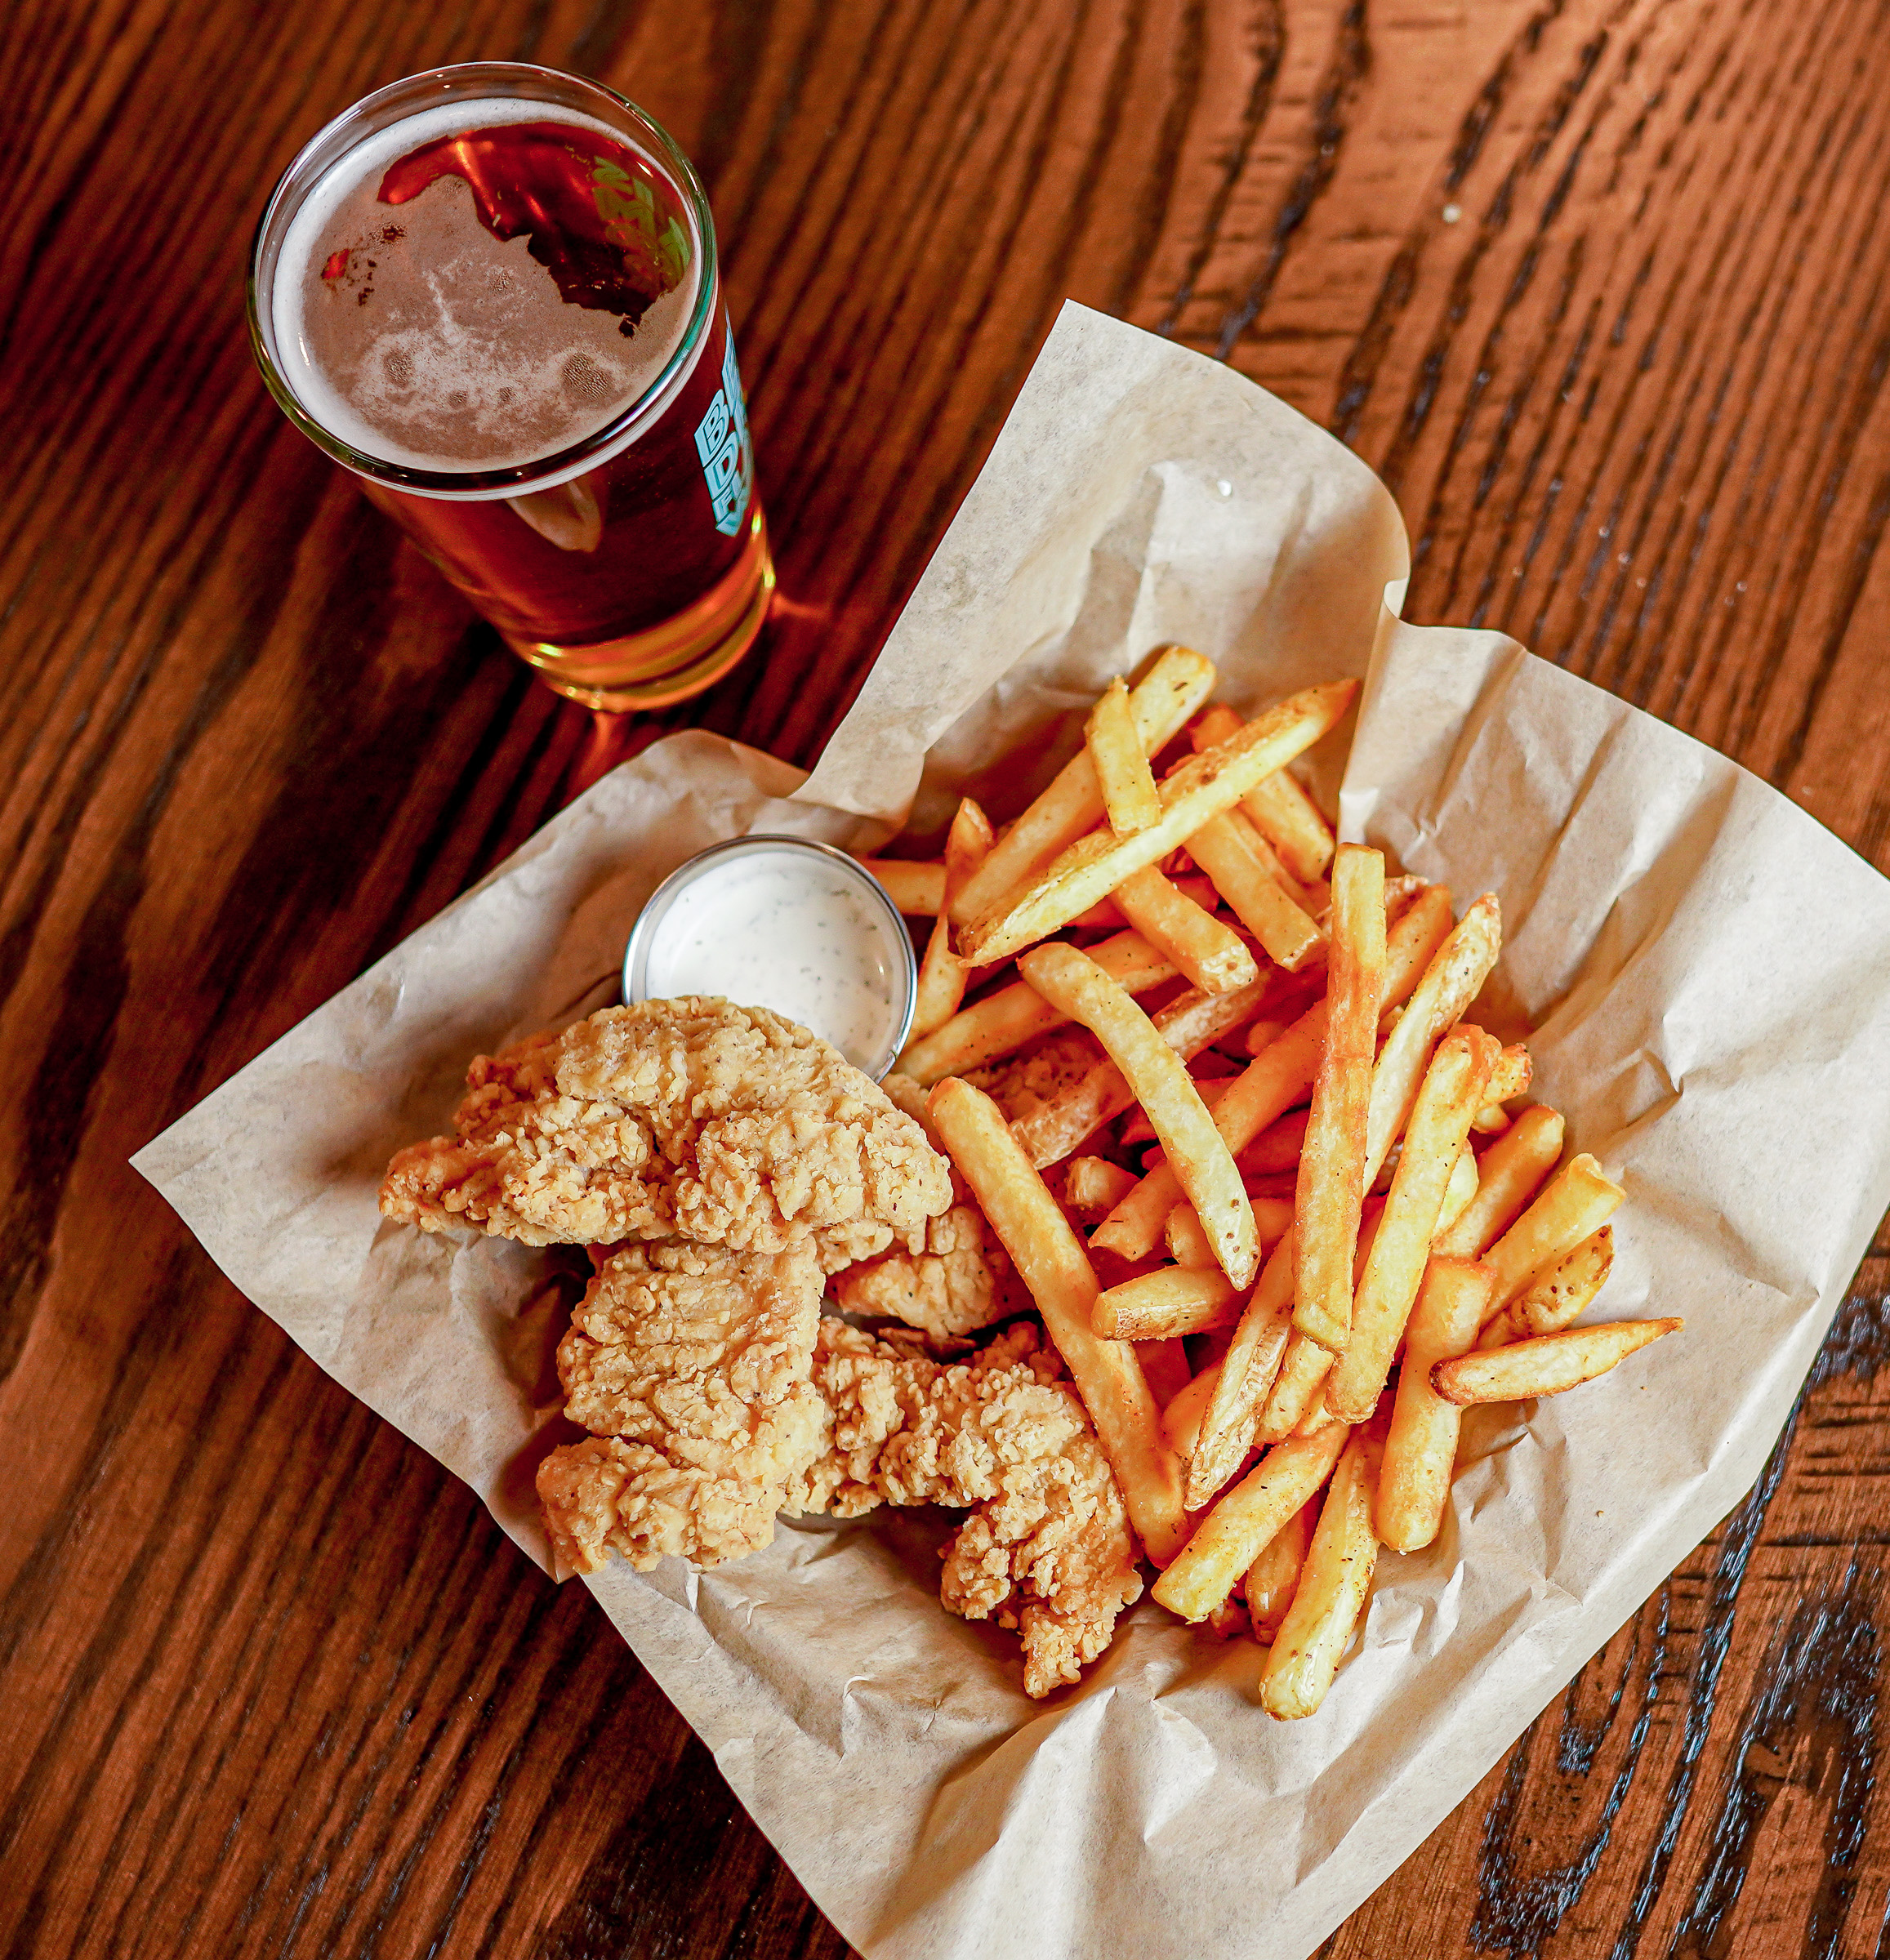 Chicken Tenders with Fries